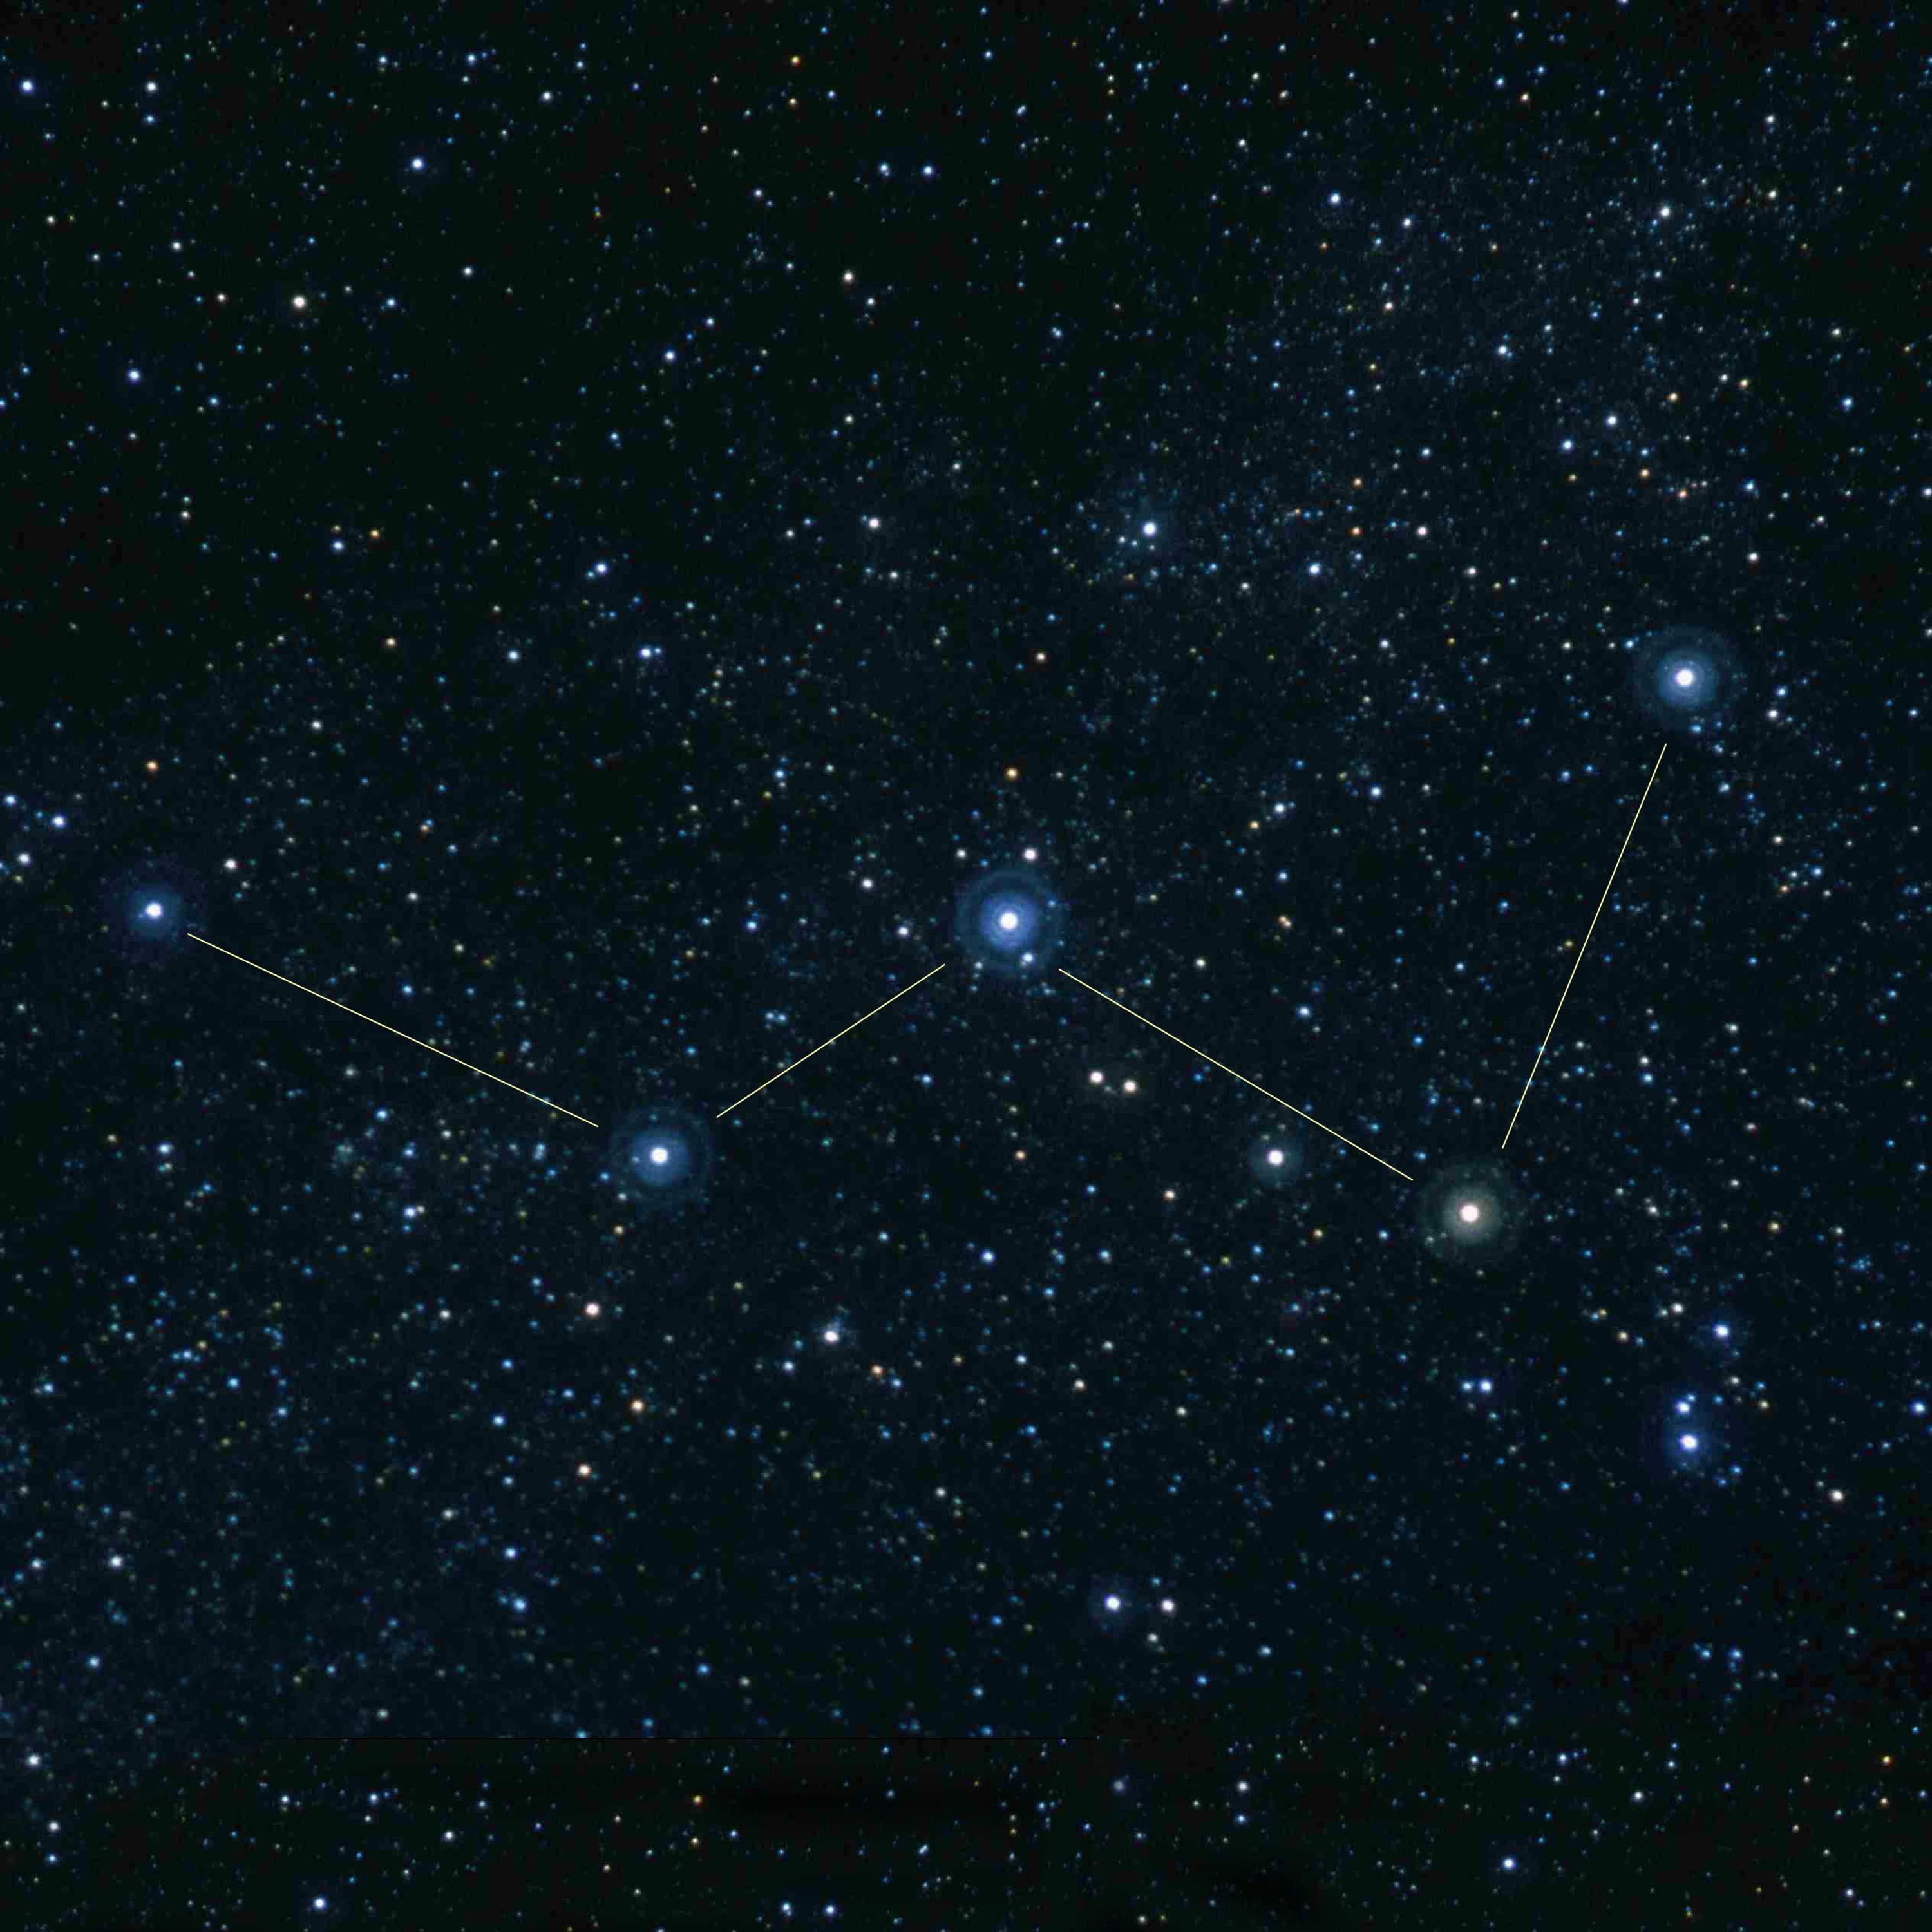 10/4/21 - The W of Cassiopeia